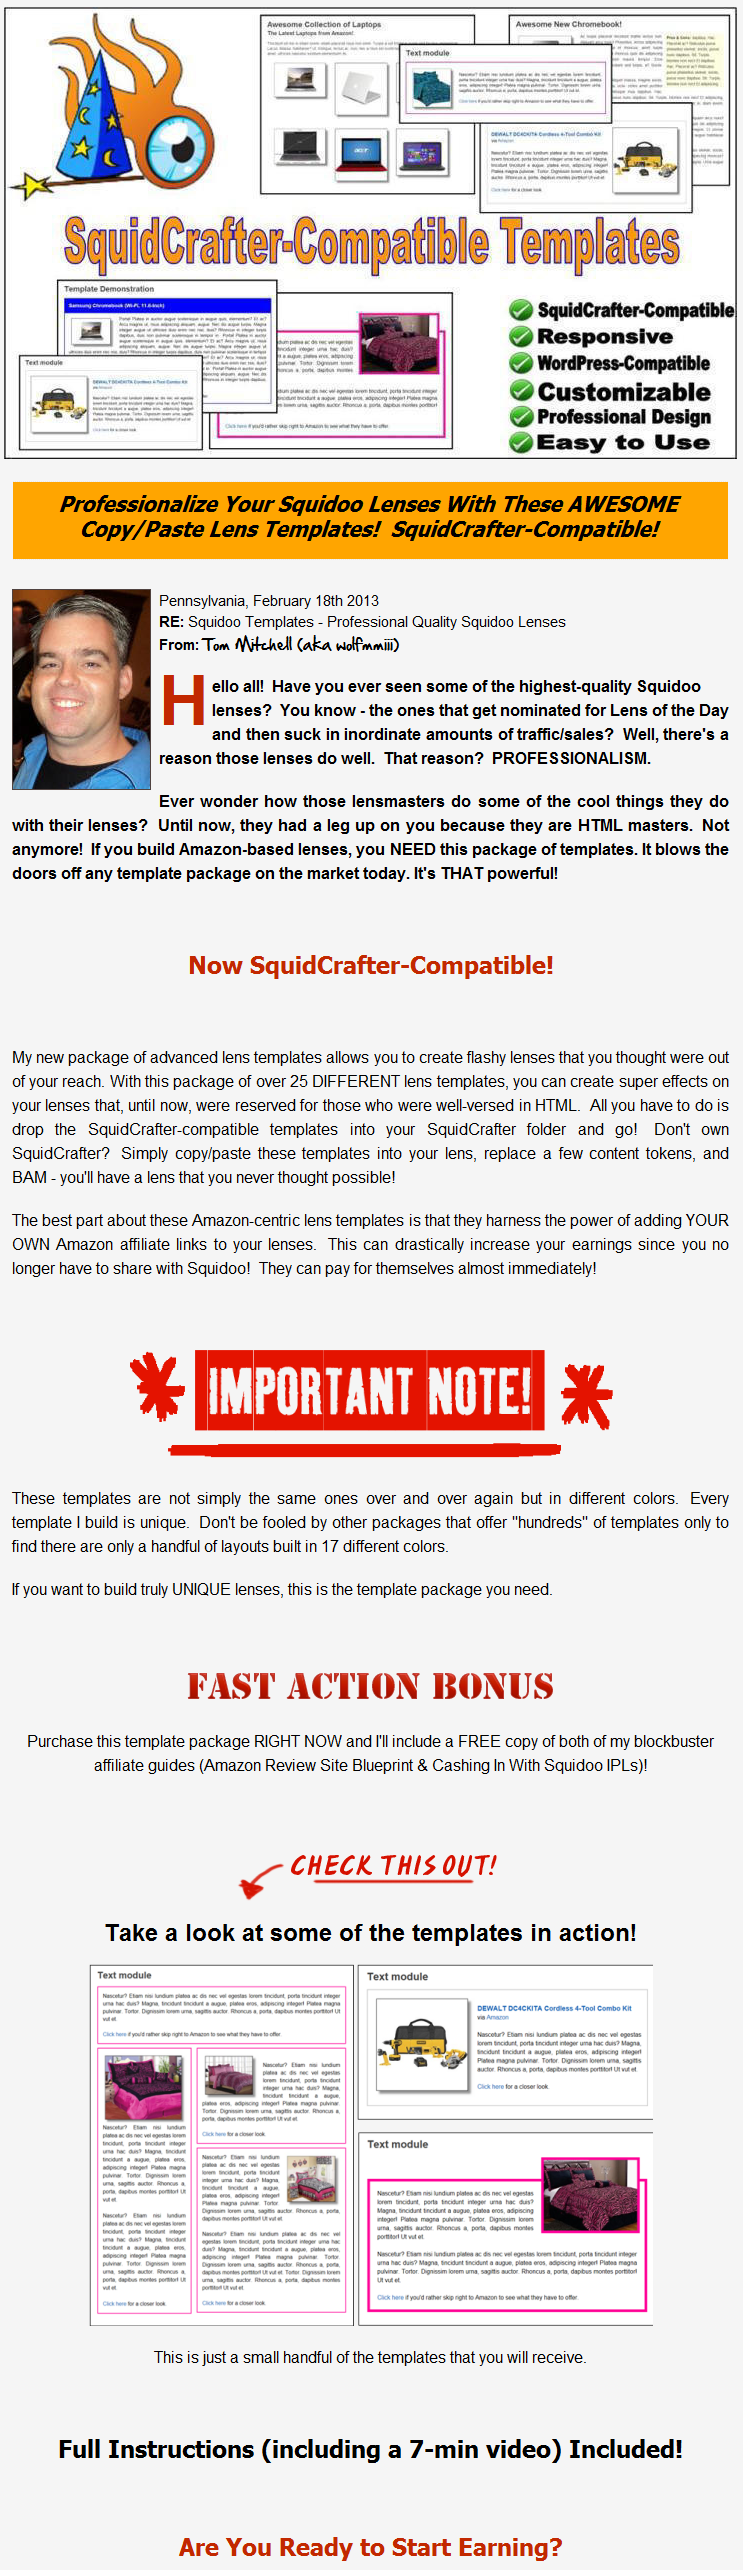 SquidCrafter-Compatible Squidoo Templates for Amazon - BONUSES ...